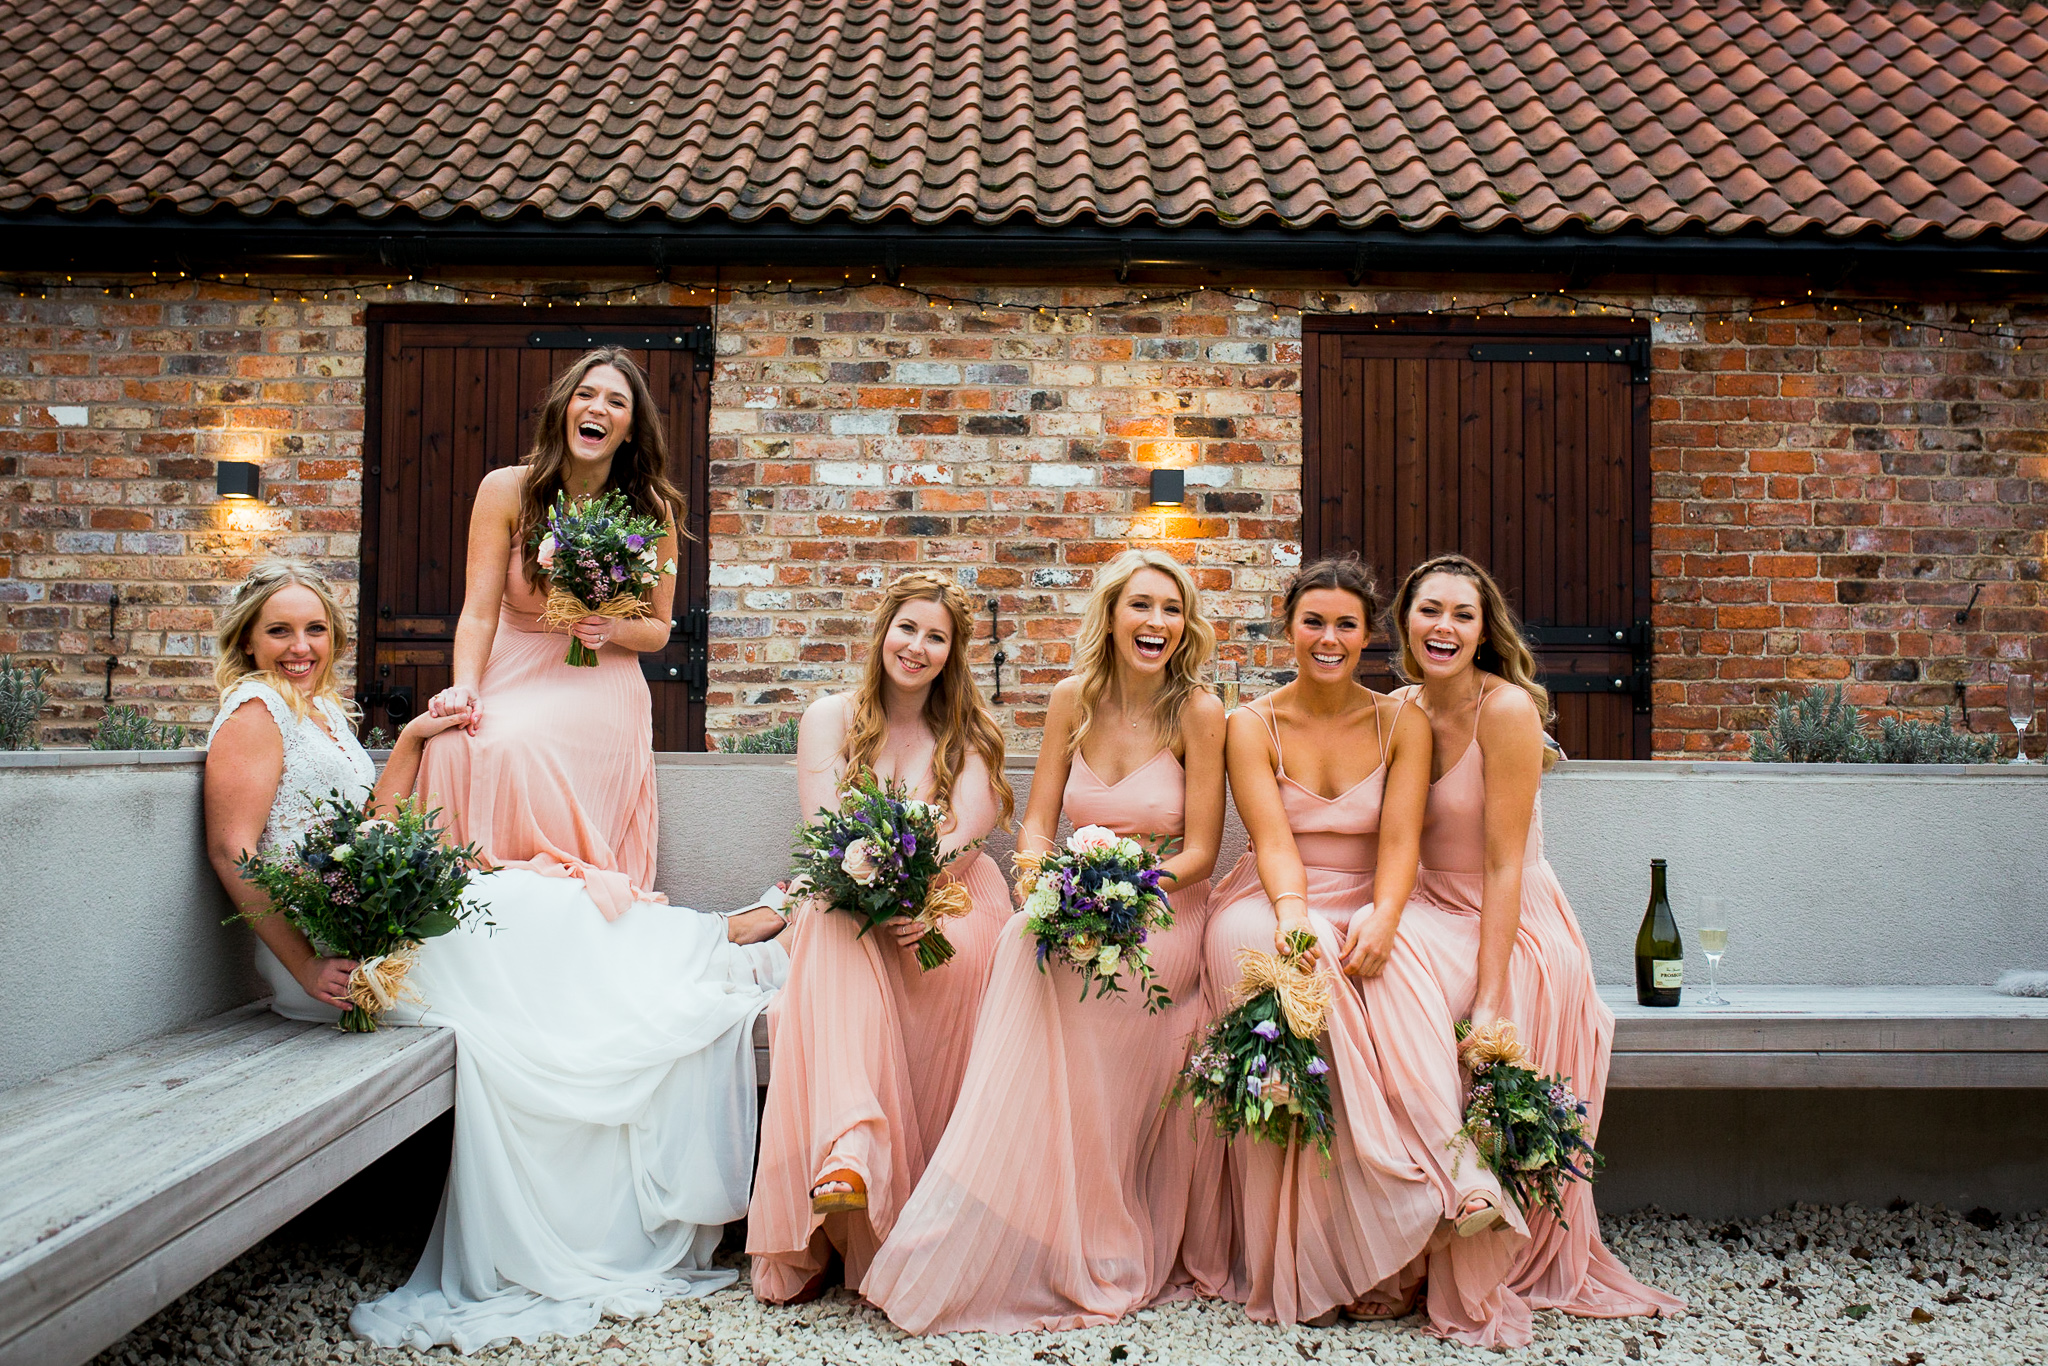 Bridesmaids in The Normans Courtyard. Photo by www.timdunk.com